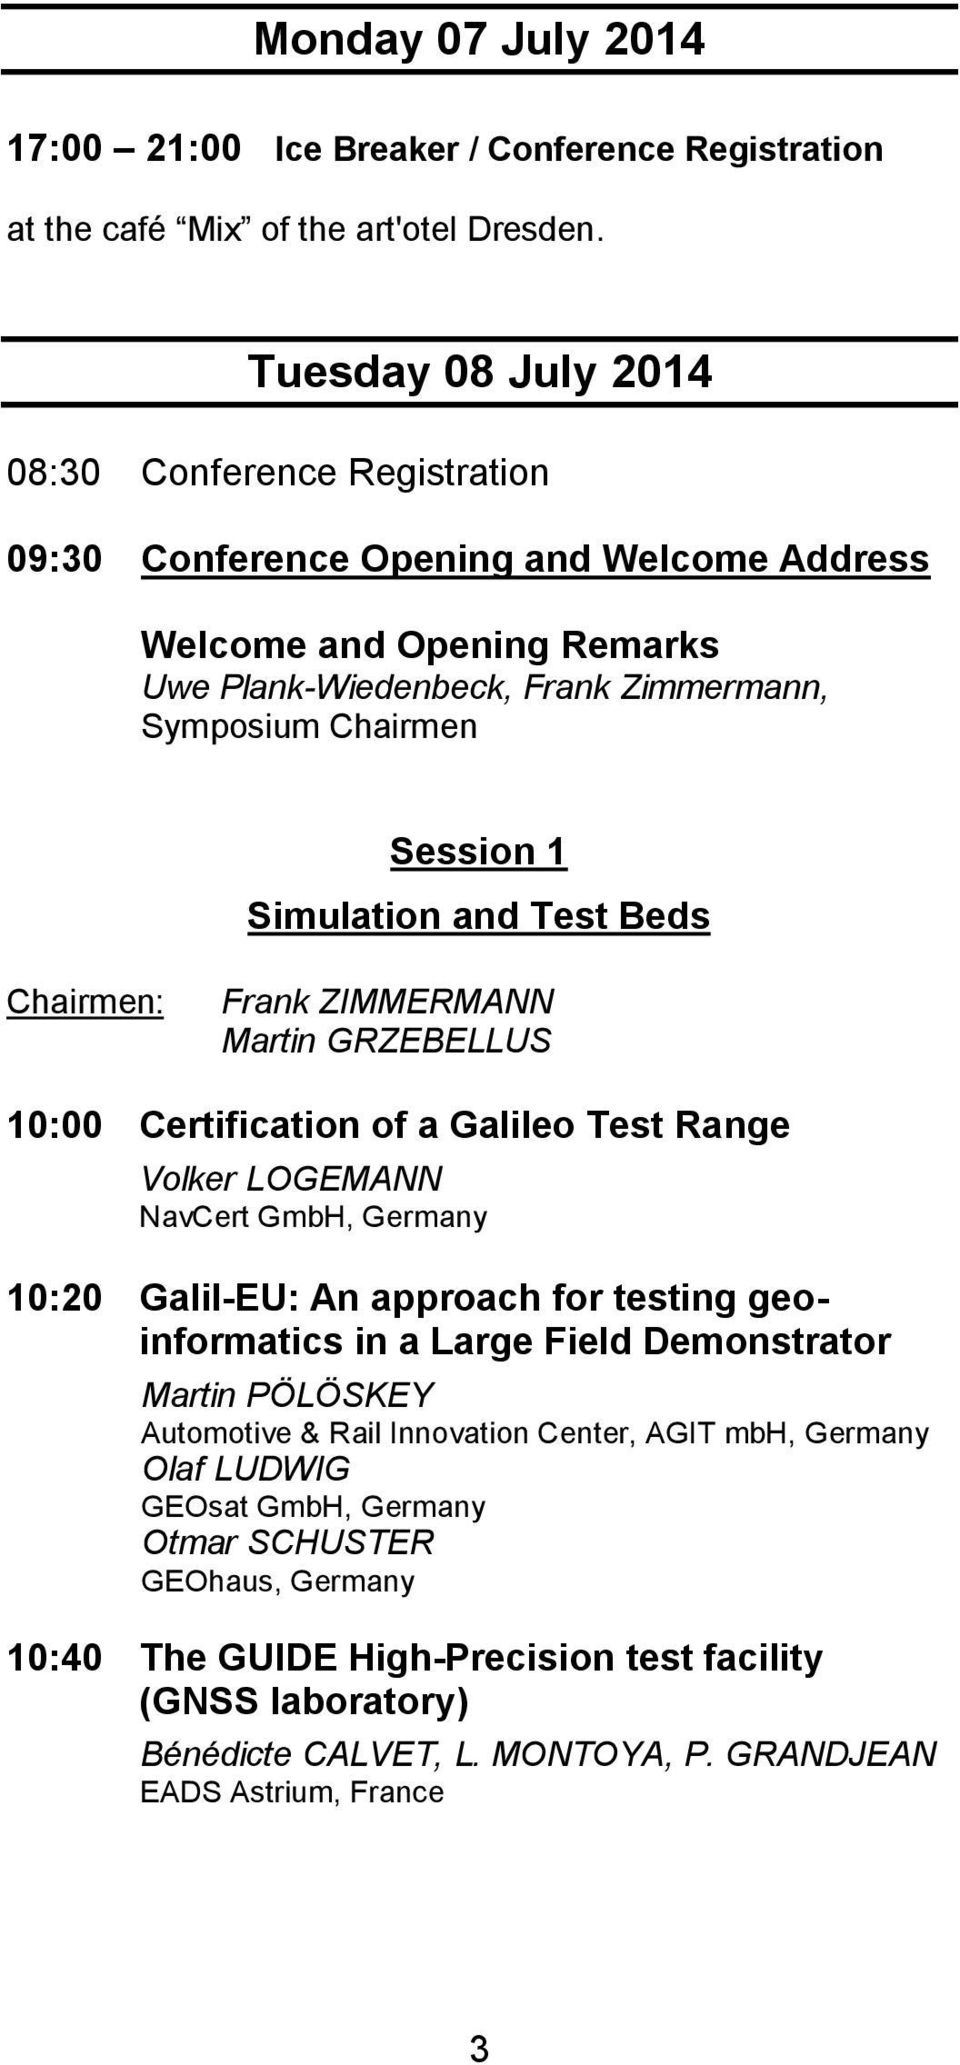 Simulation and Test Beds Chairmen: Frank ZIMMERMANN Martin GRZEBELLUS 10:00 Certification of a Galileo Test Range Volker LOGEMANN NavCert GmbH, Germany 10:20 Galil-EU: An approach for testing